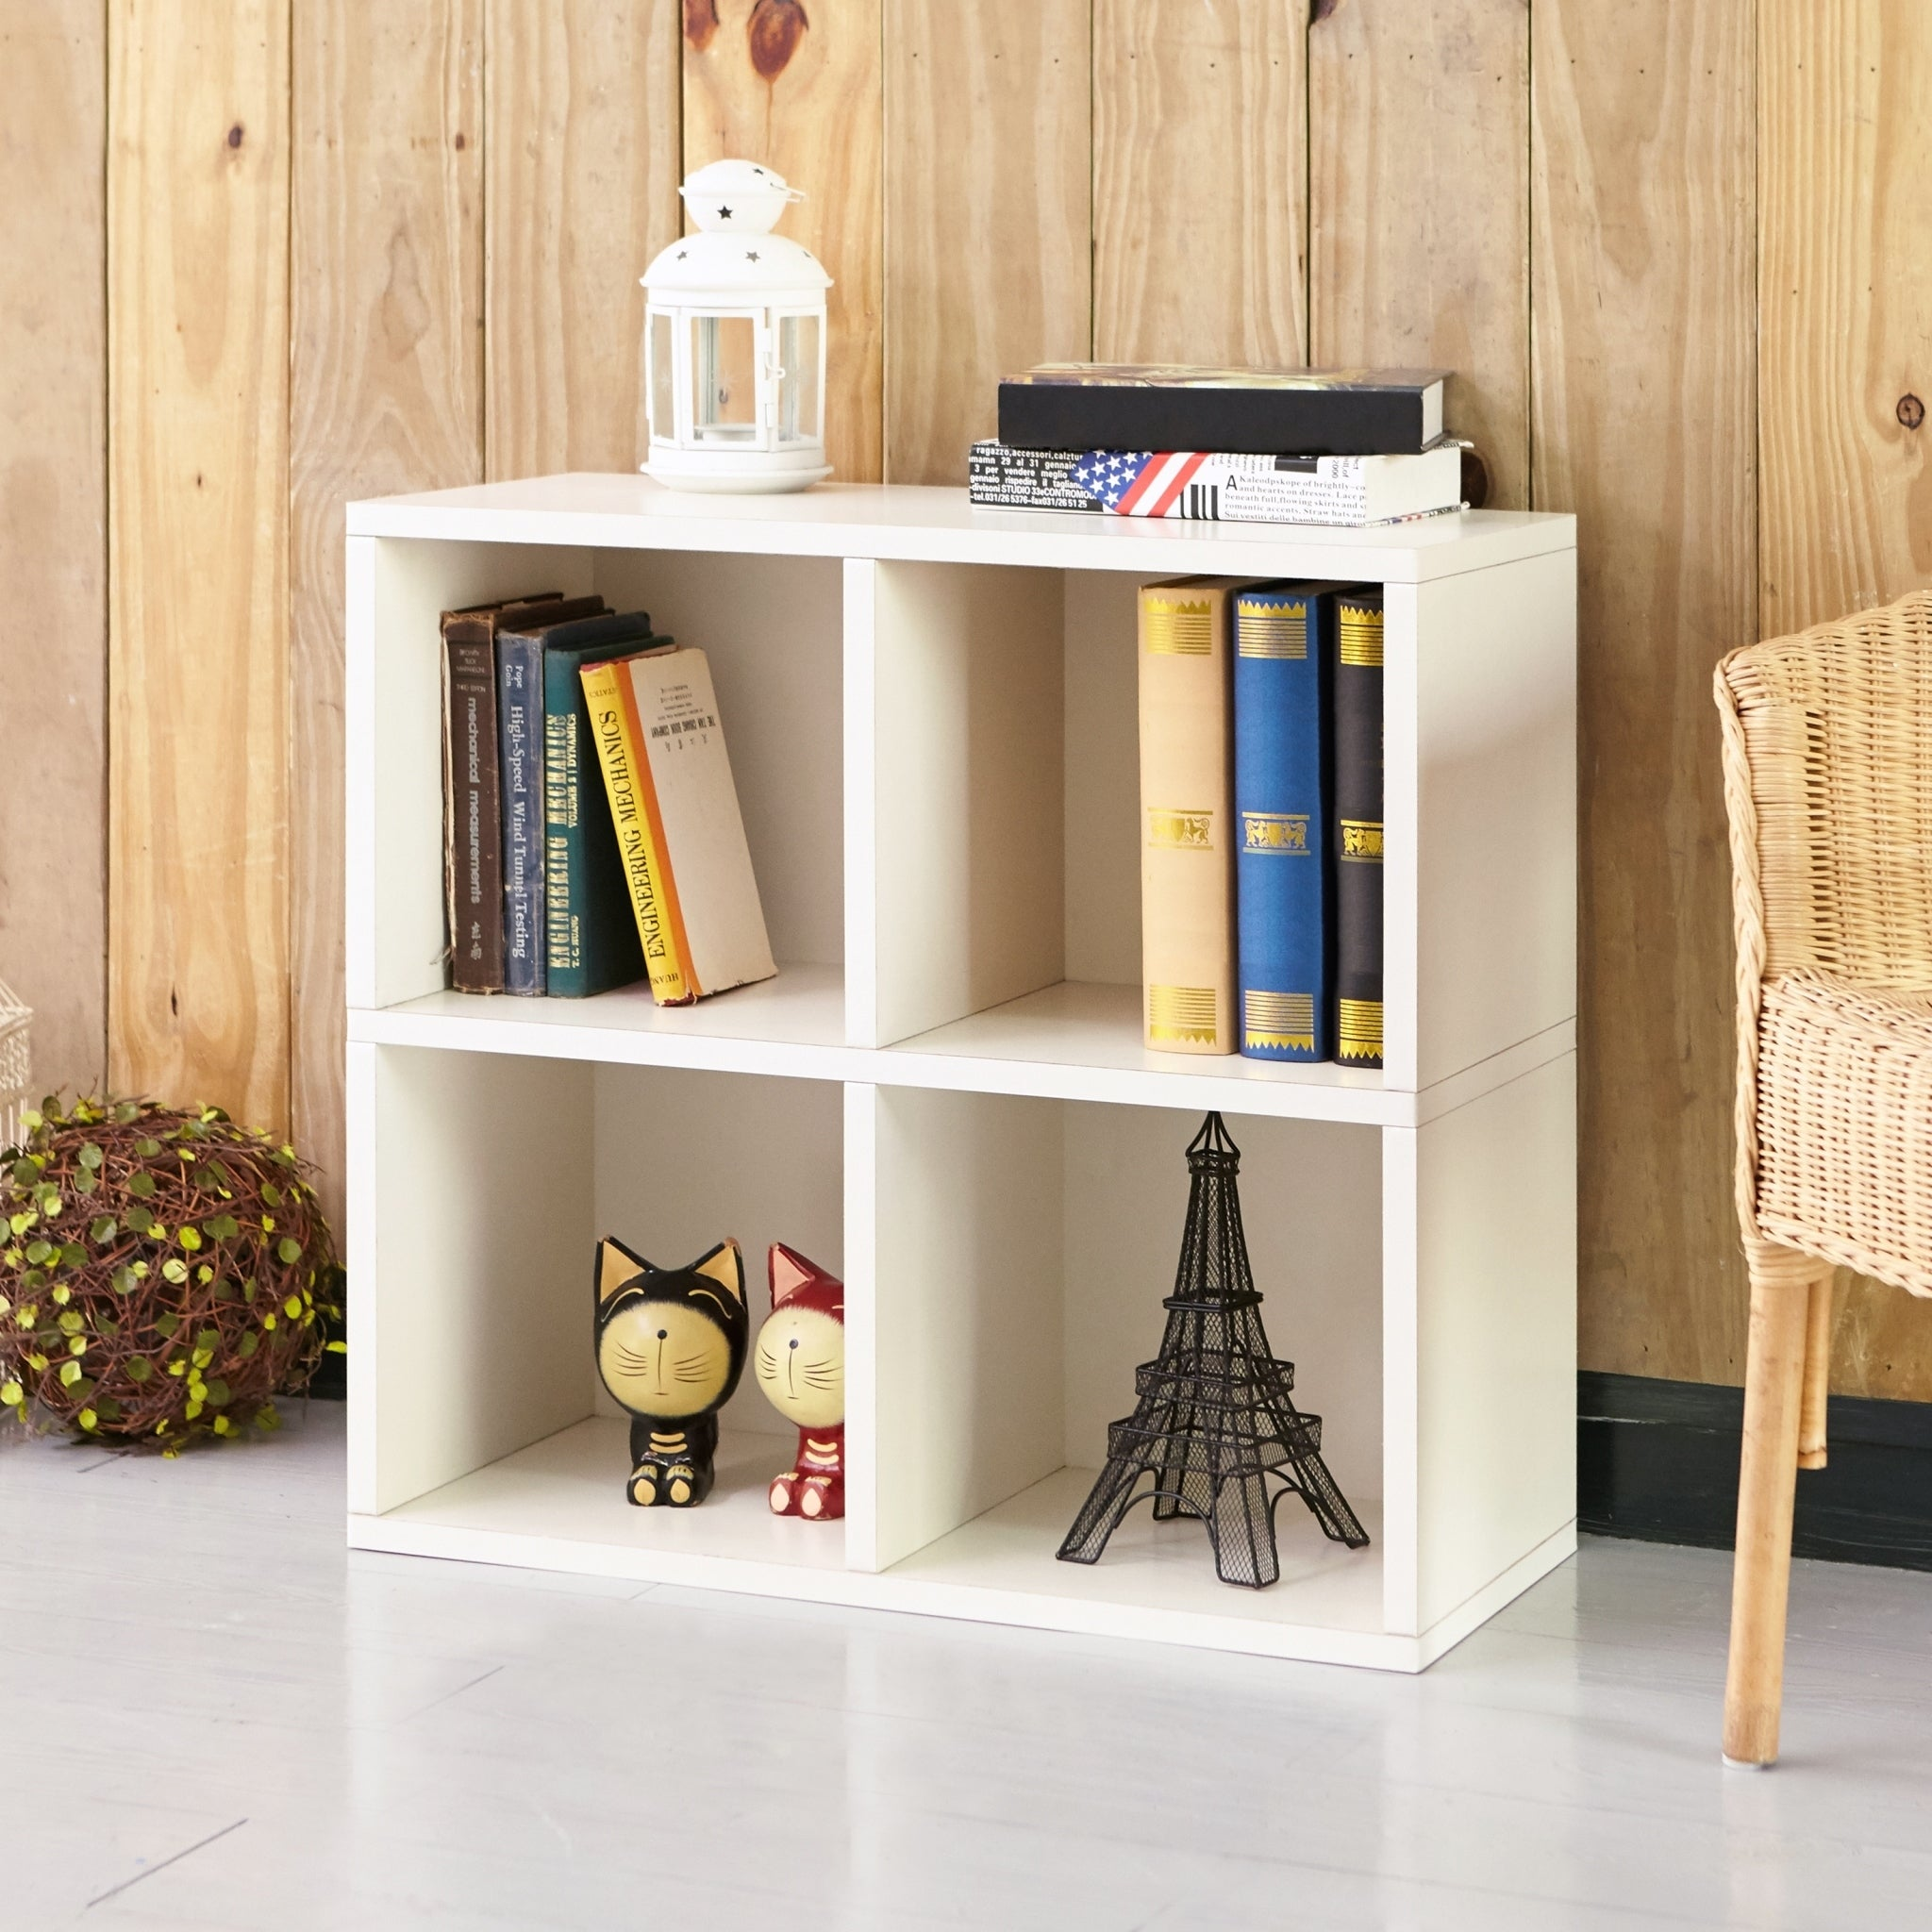 Clover Eco 4 Cubby Bookcase Storage White Lifetime Guarantee Free Shipping Today 23716206